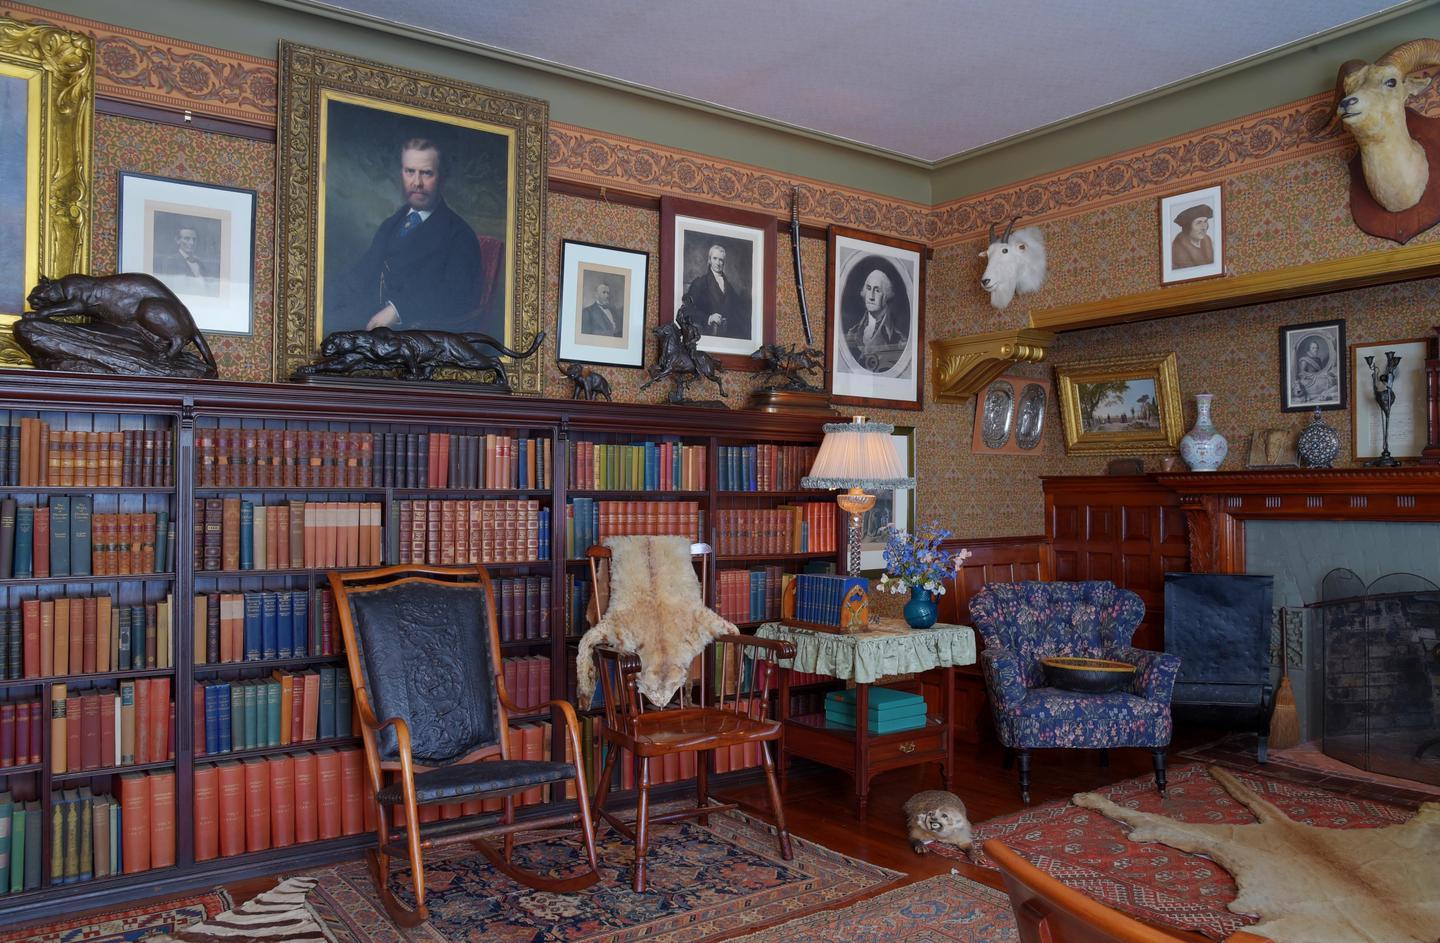 Library and OfficeA view of President Roosevelt's library and office at Sagamore Hill.